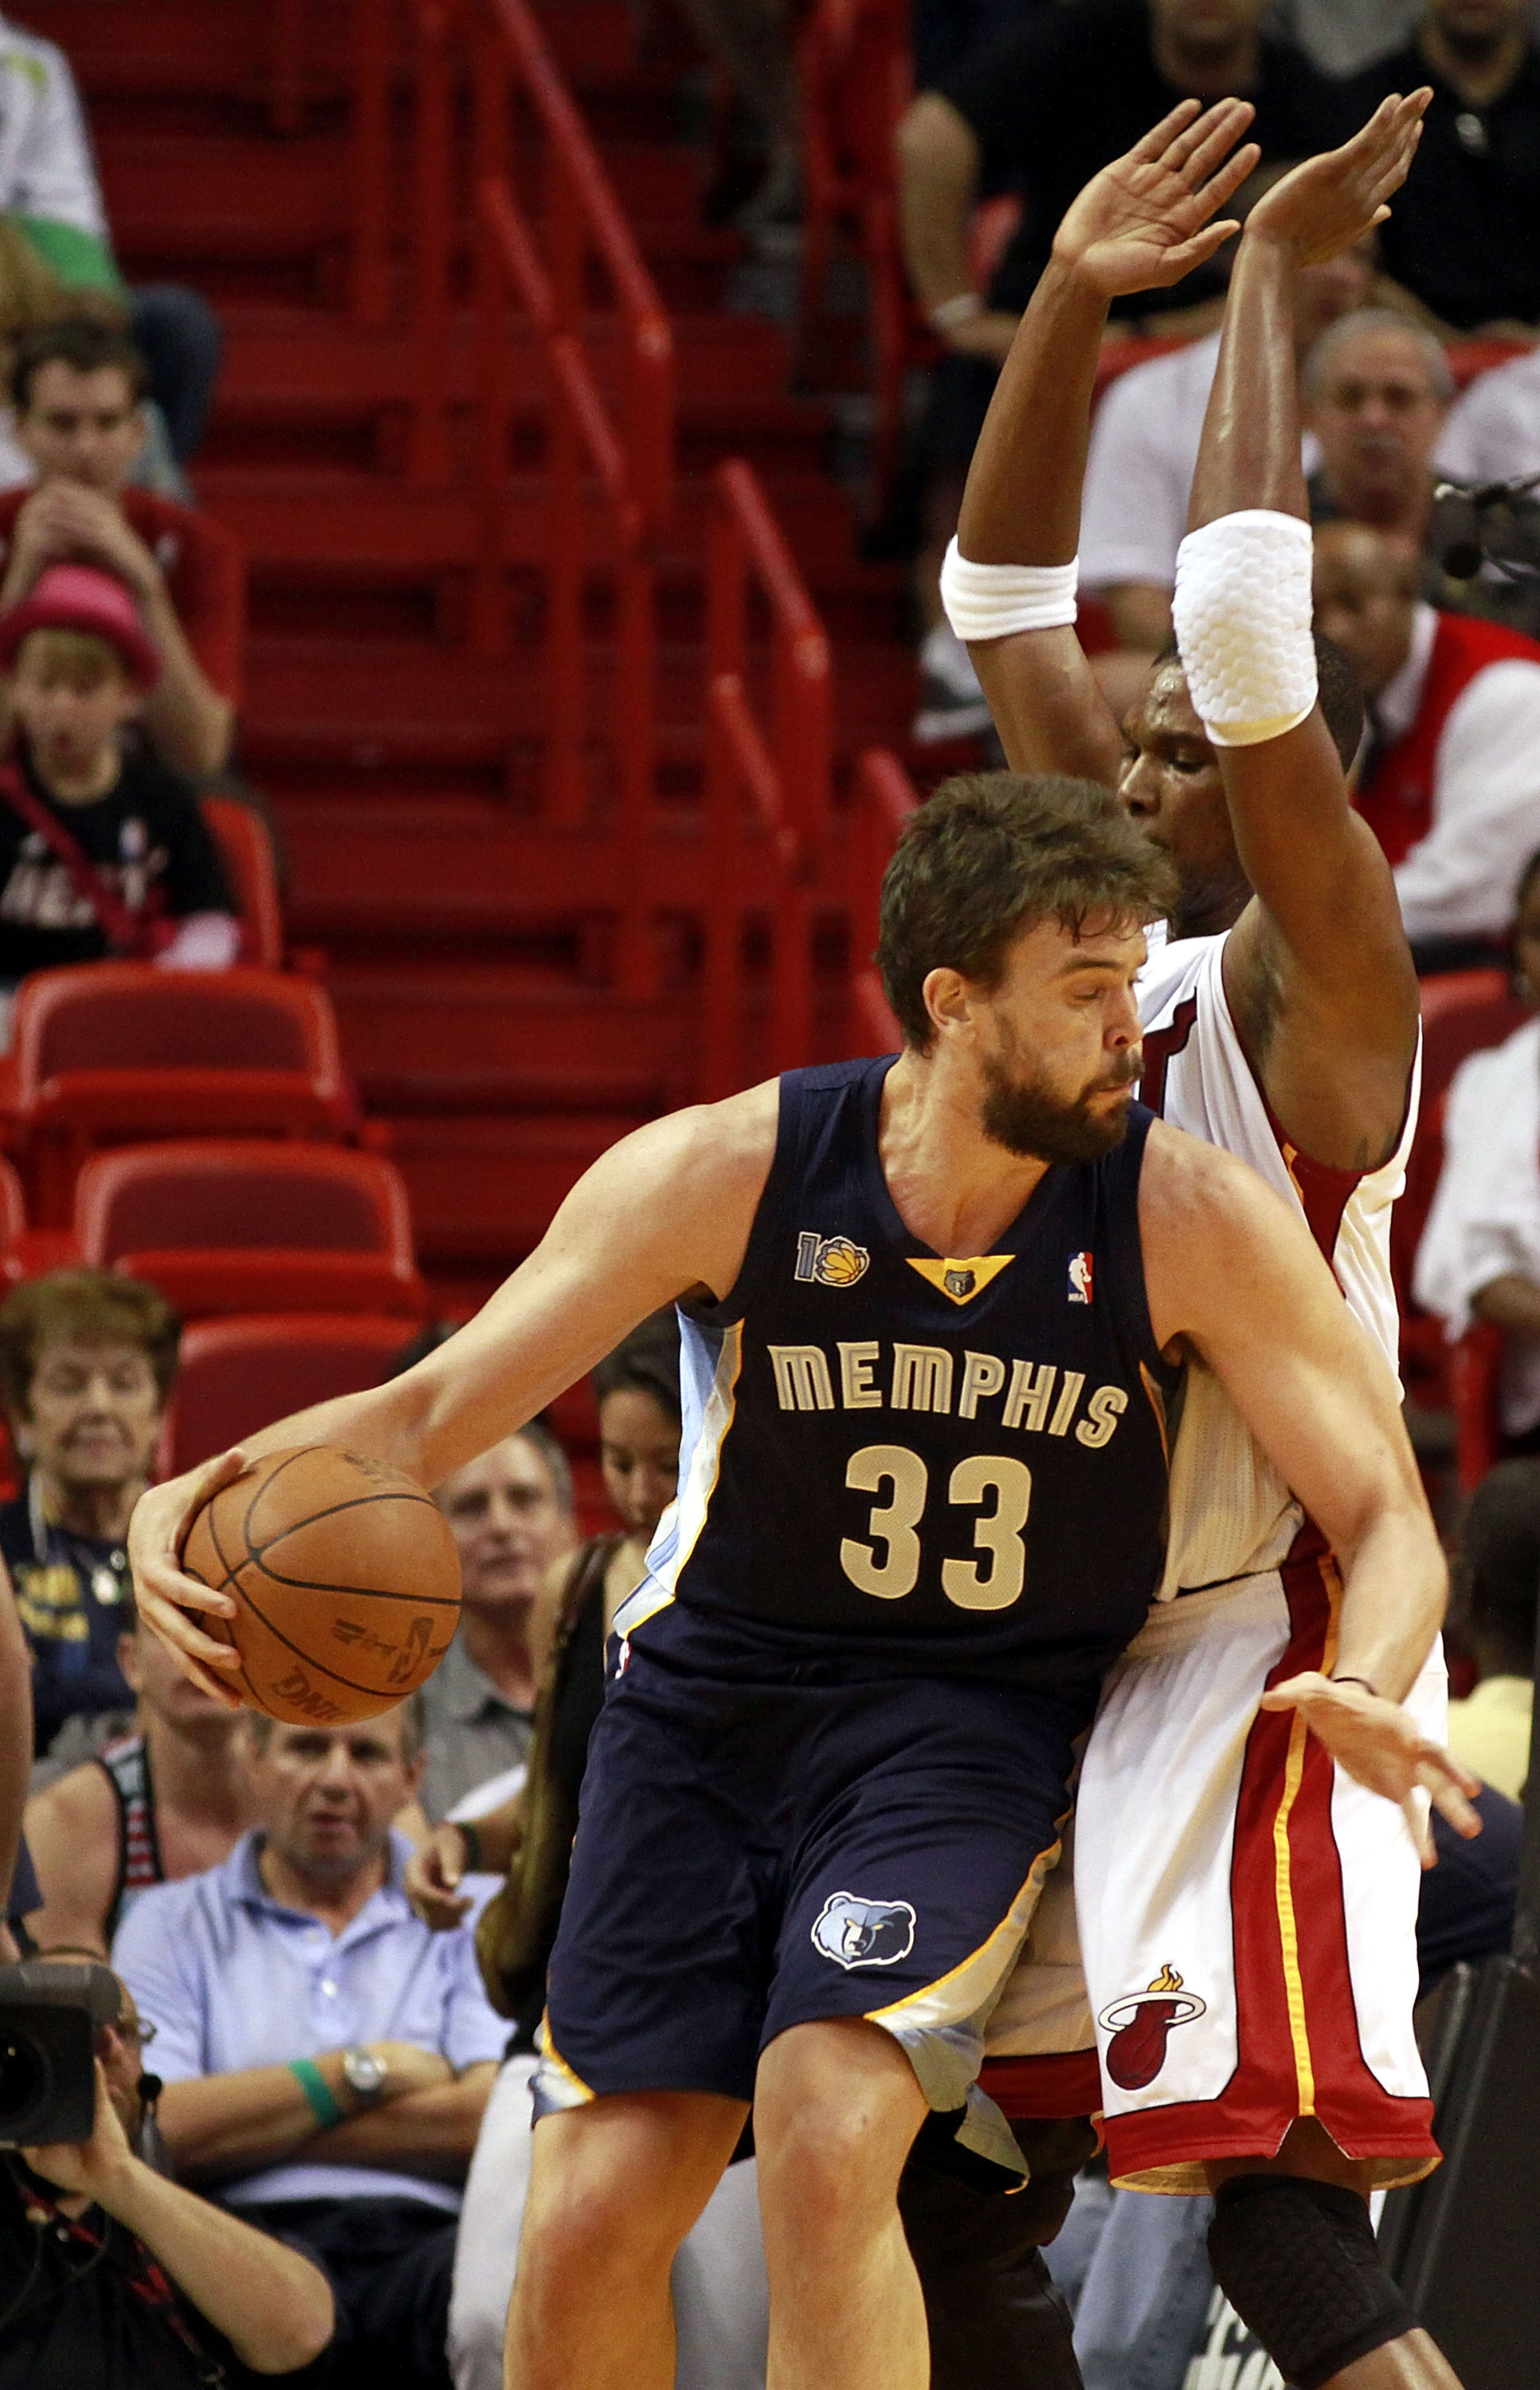 MIAMI - MARCH 12:  Forward Chris Bosh #1 of the Miami Heat defends against  Marc Gasol #33 of the Memphis Grizzlies at American Airlines Arena on March 12, 2011 in Miami, Florida. NOTE TO USER: User expressly acknowledges and agrees that, by downloading a